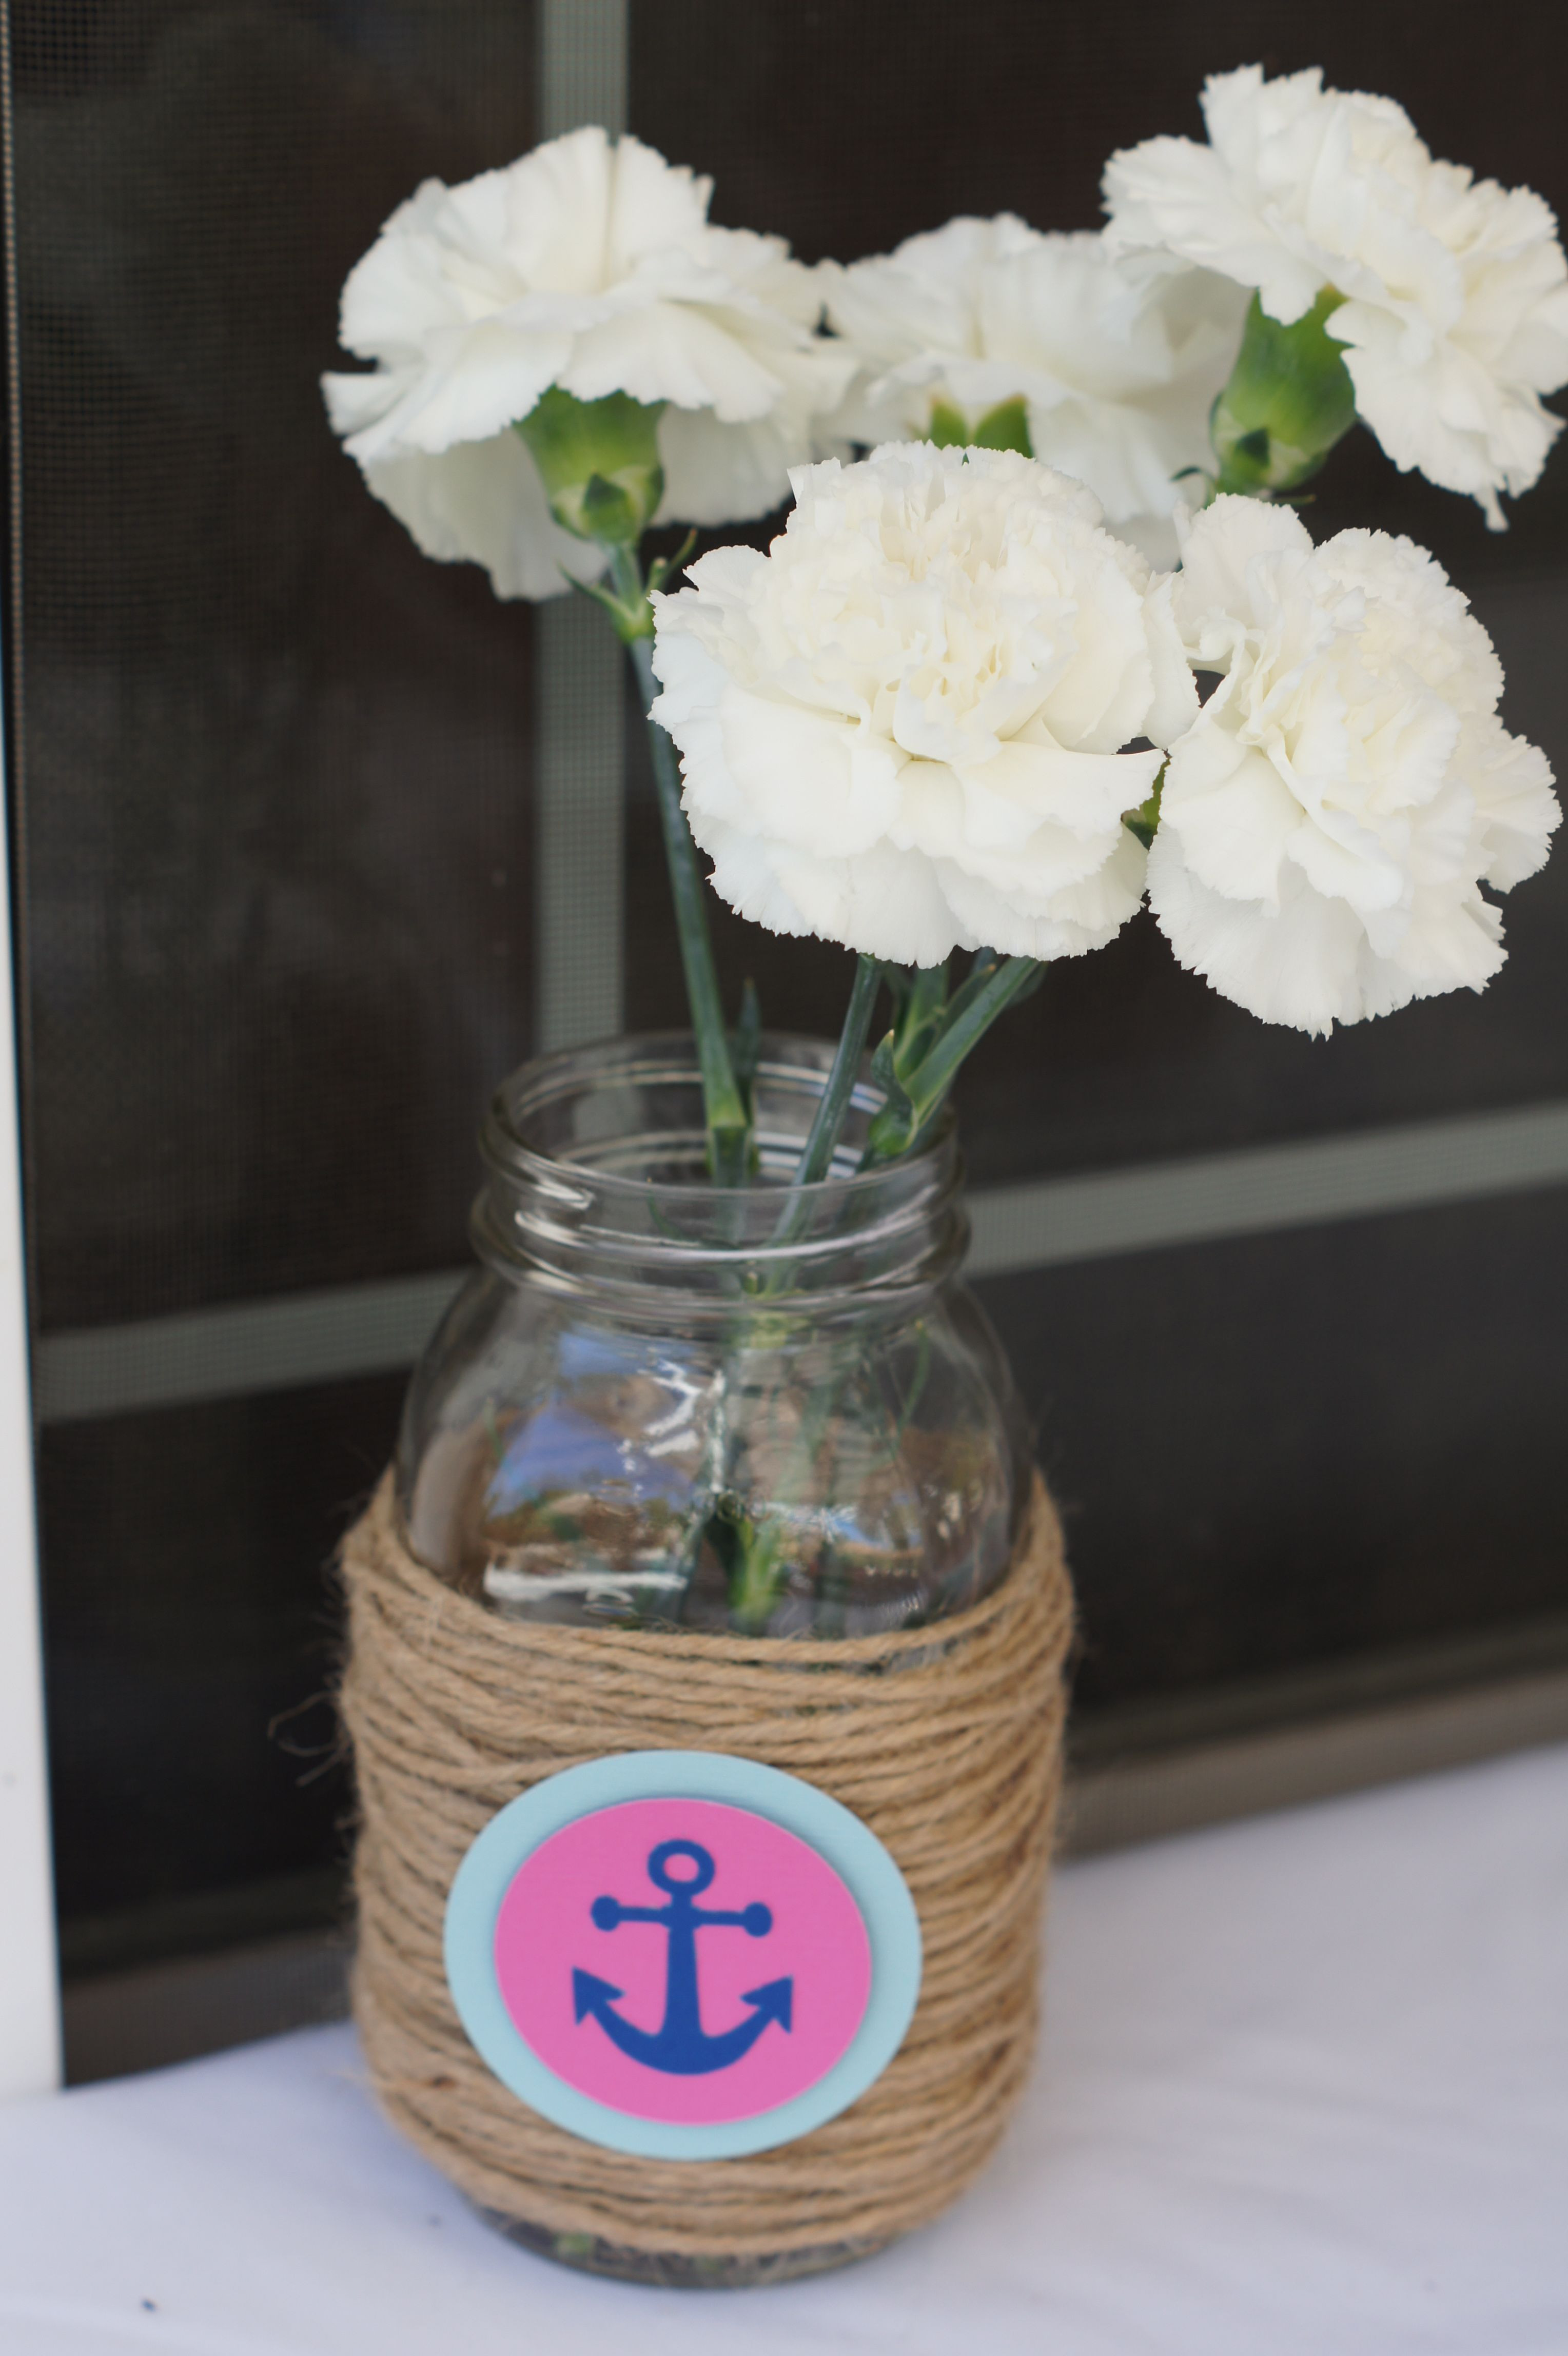 rope vase of twine around jars with flowers cute decor idea nautical themed in babies